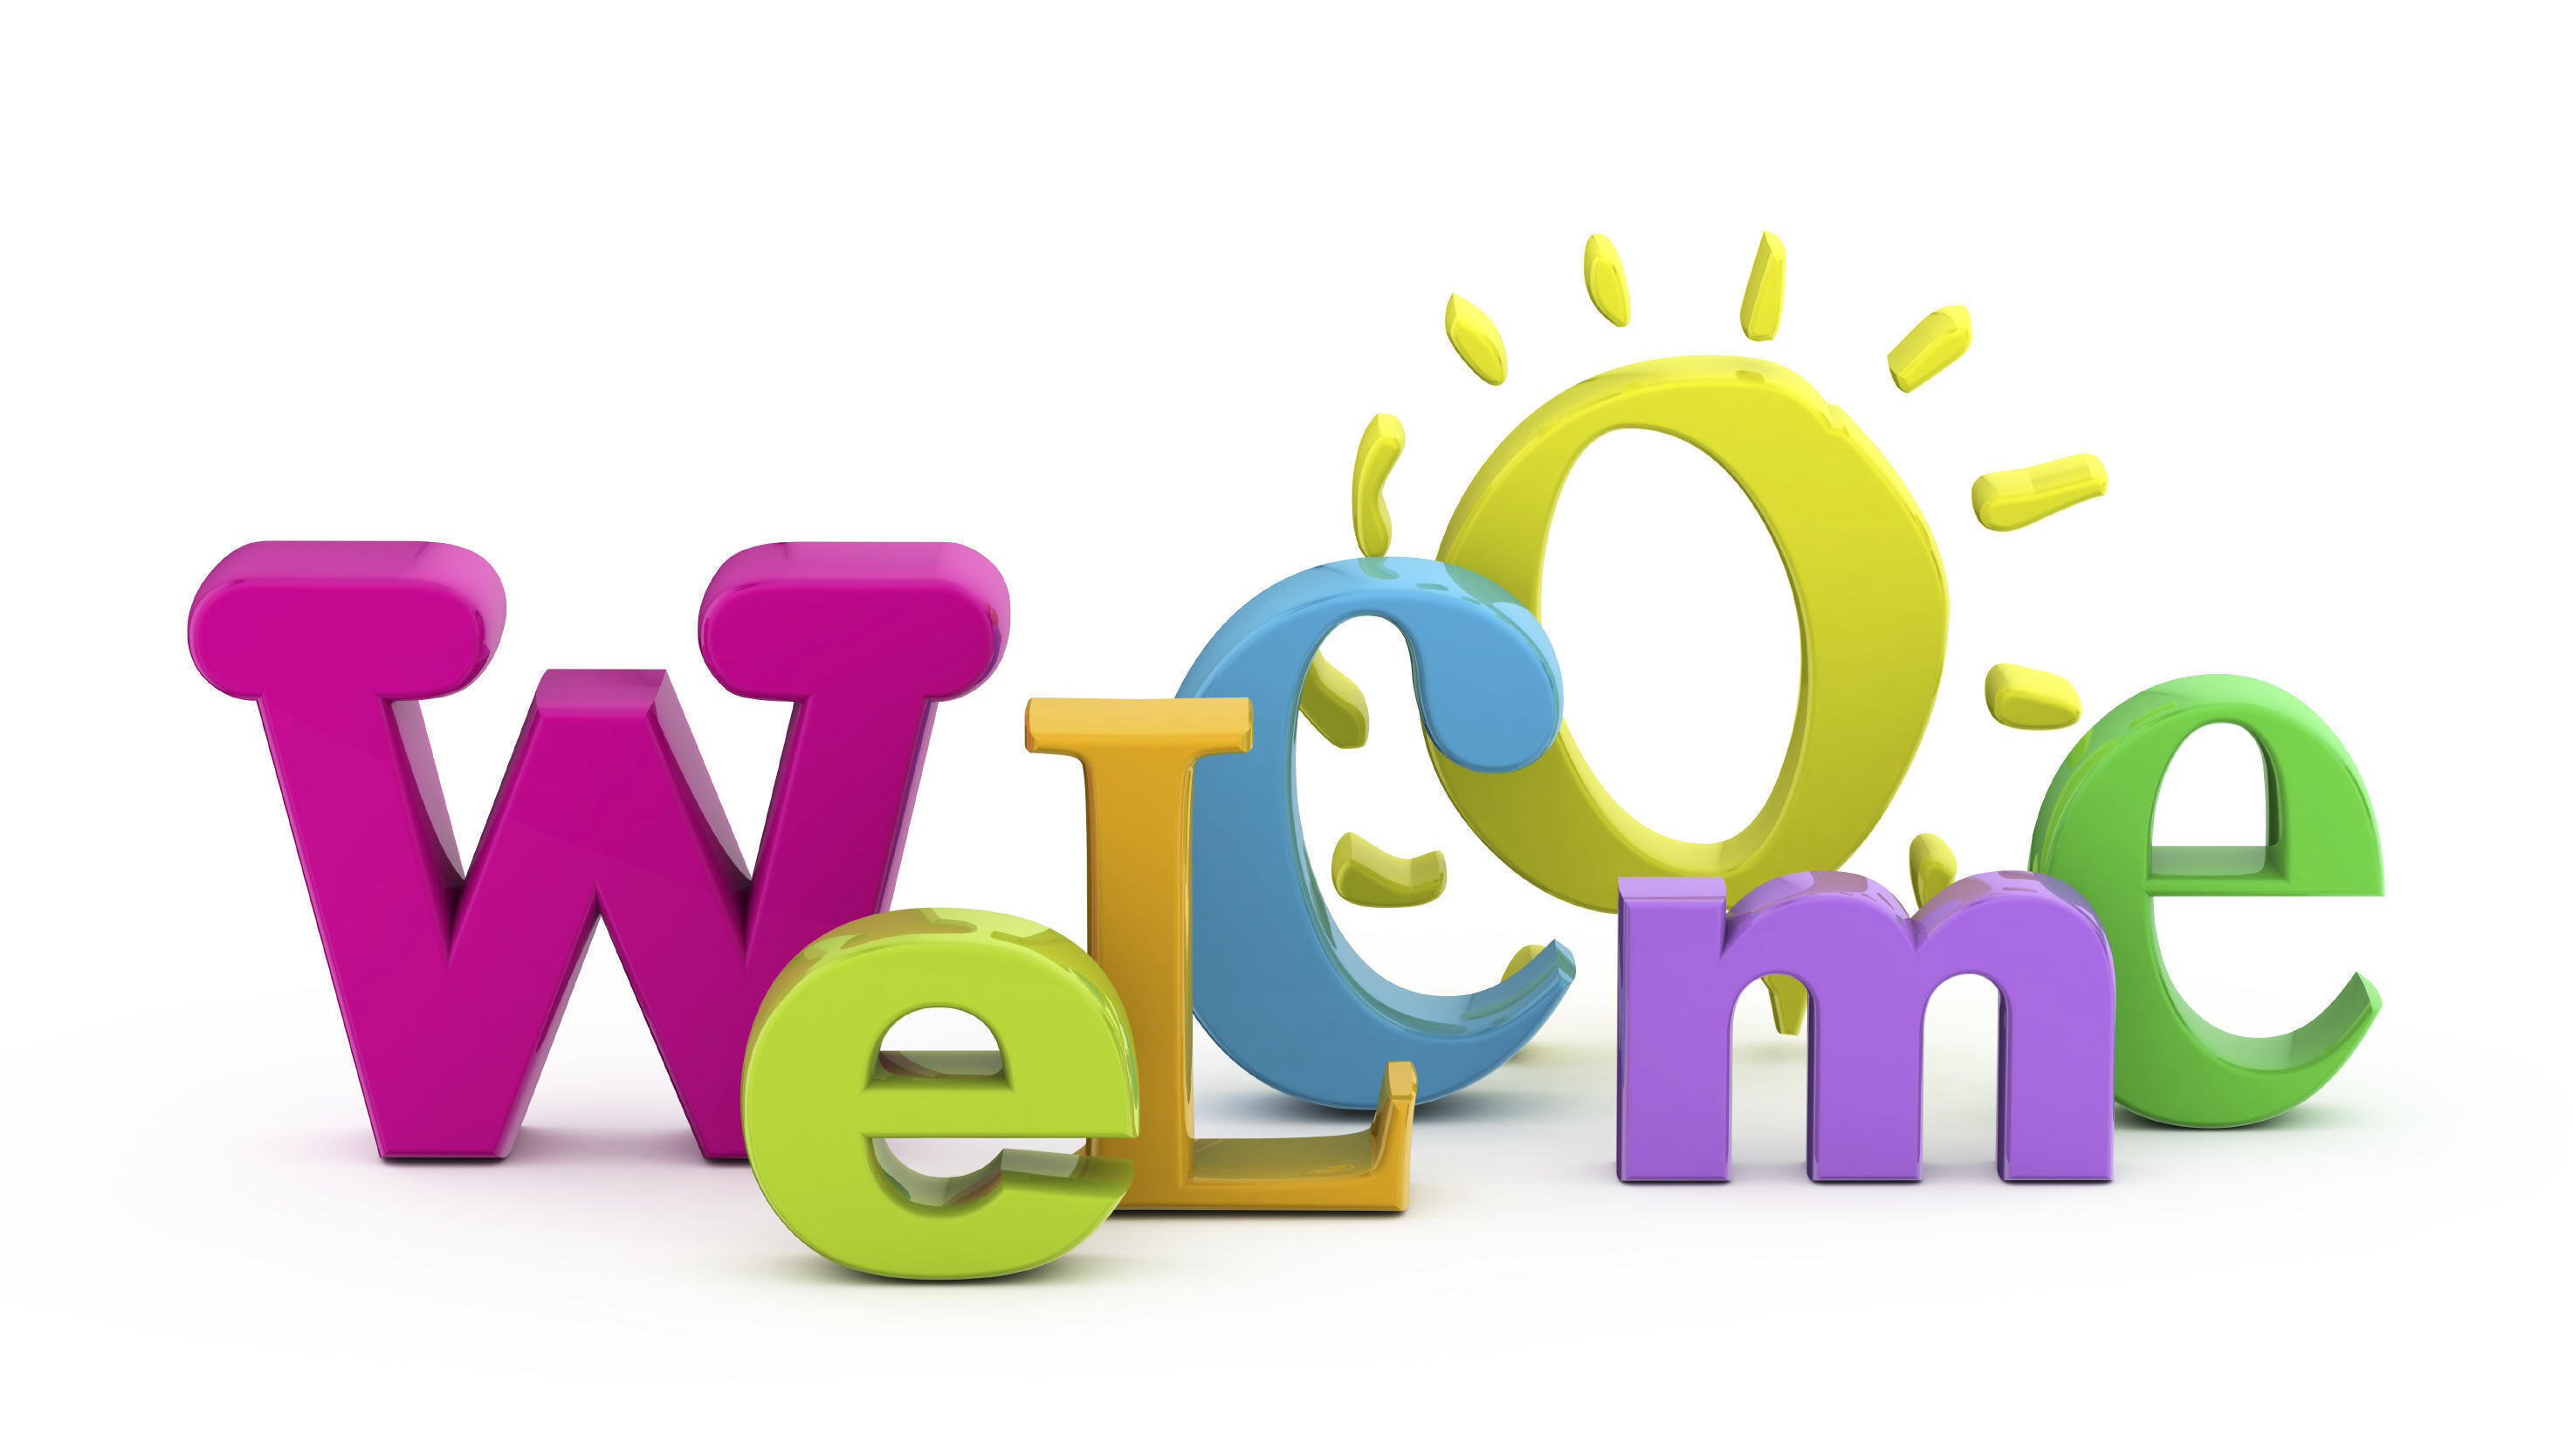 Welcome-3d-Text-Picture.jpg